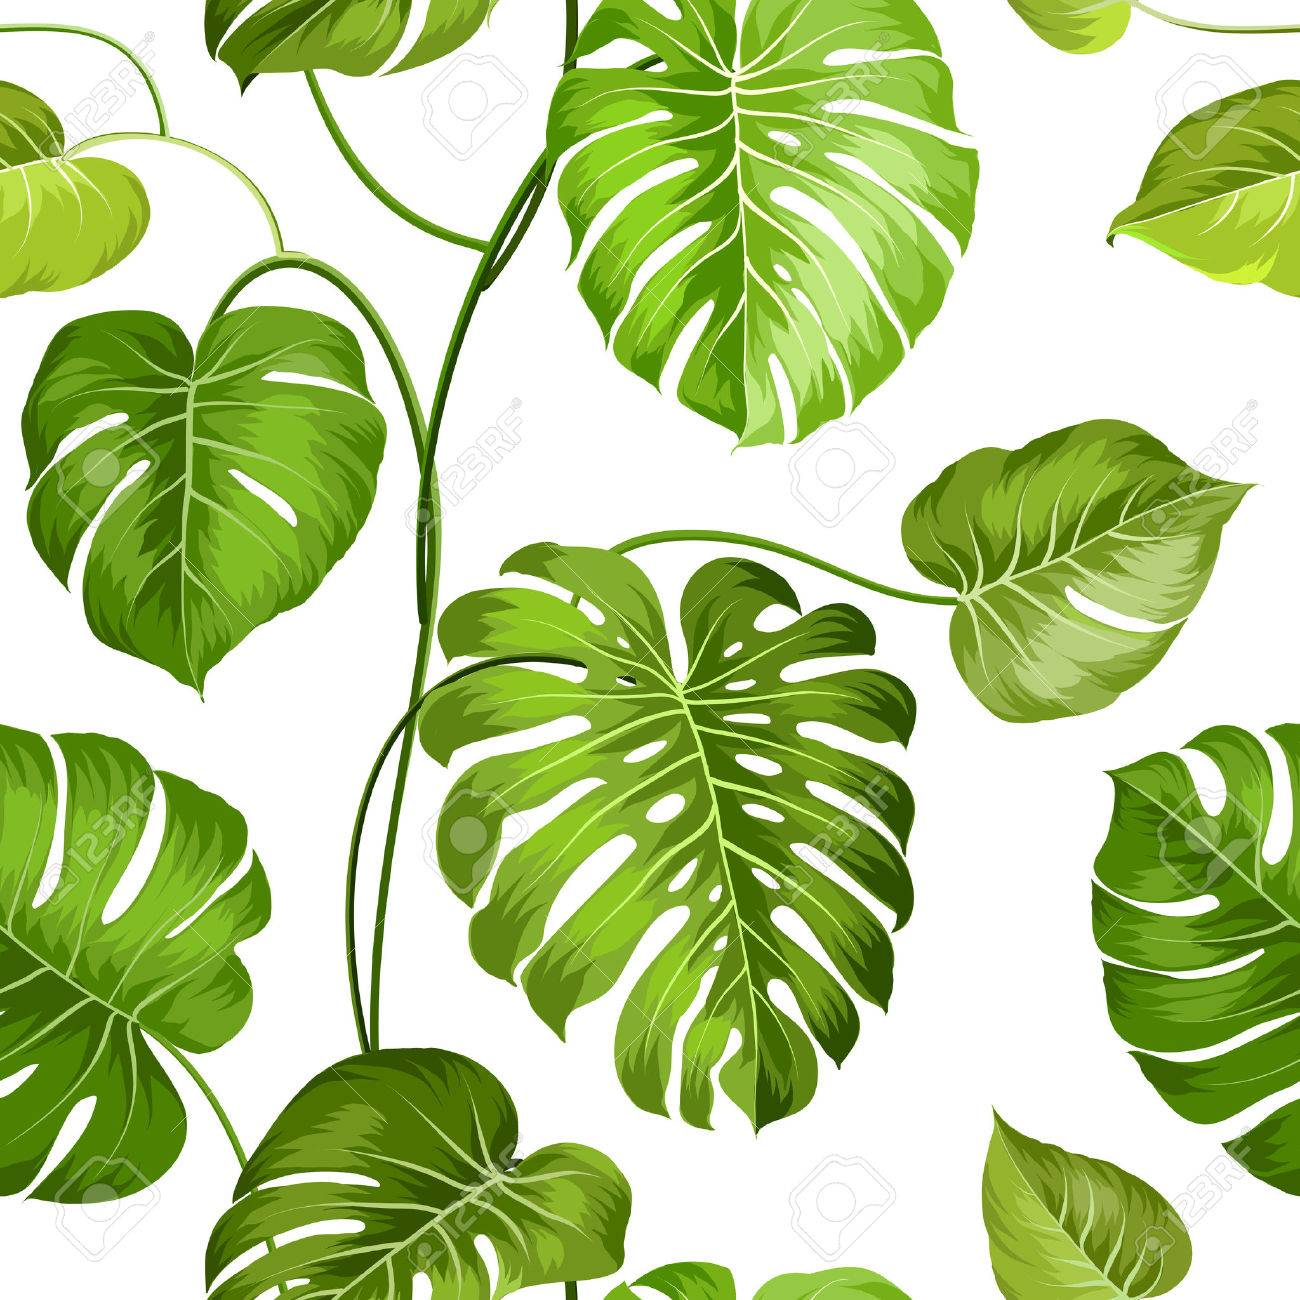 Topical palm leaves over white, seamless pattern. Vector illustration. - 40931749